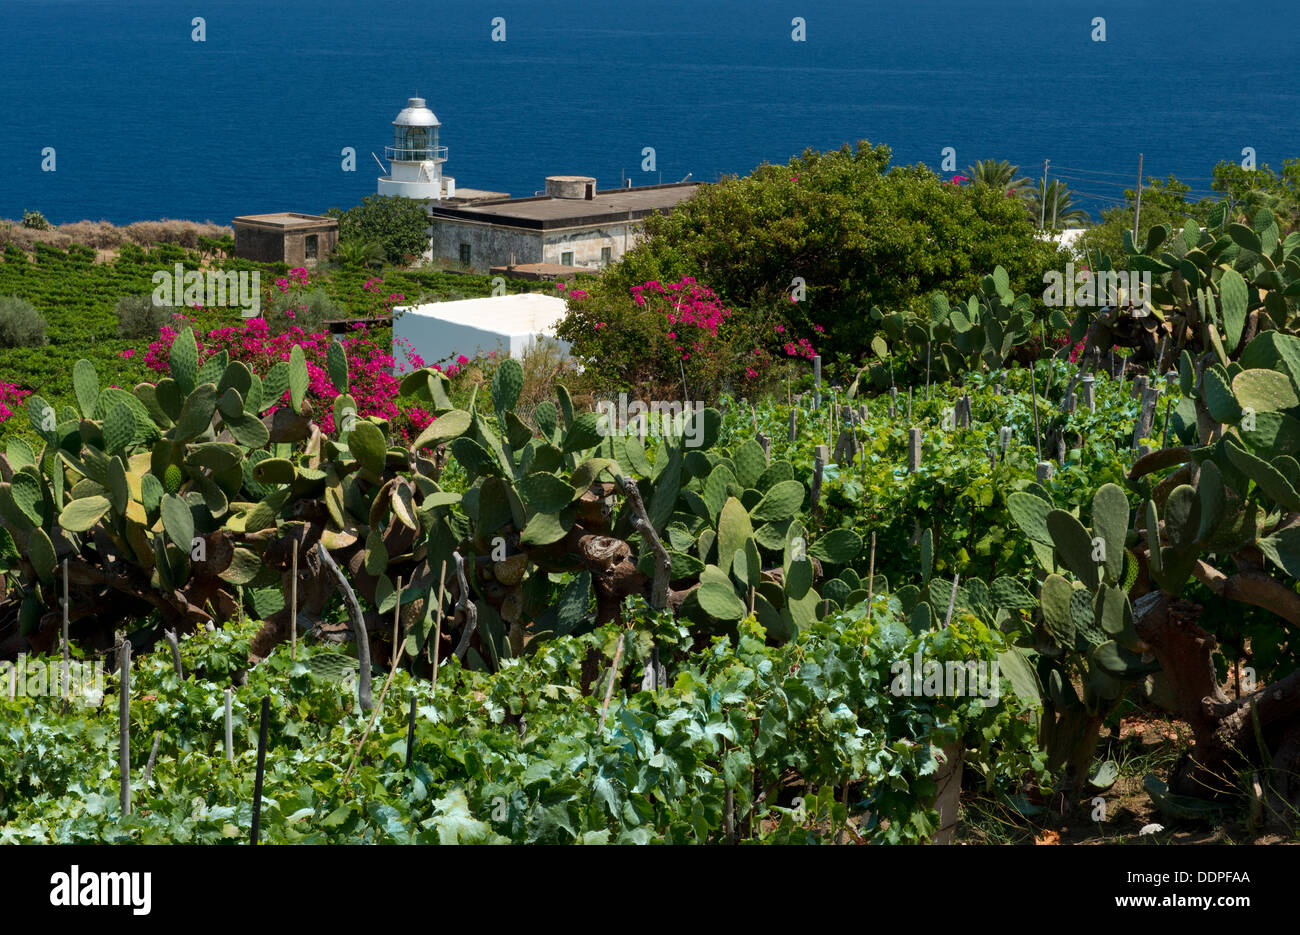 The Capofaro Lighthouse on the island of Salina in The Aeolian Islands, Sicily, Italy - Stock Image